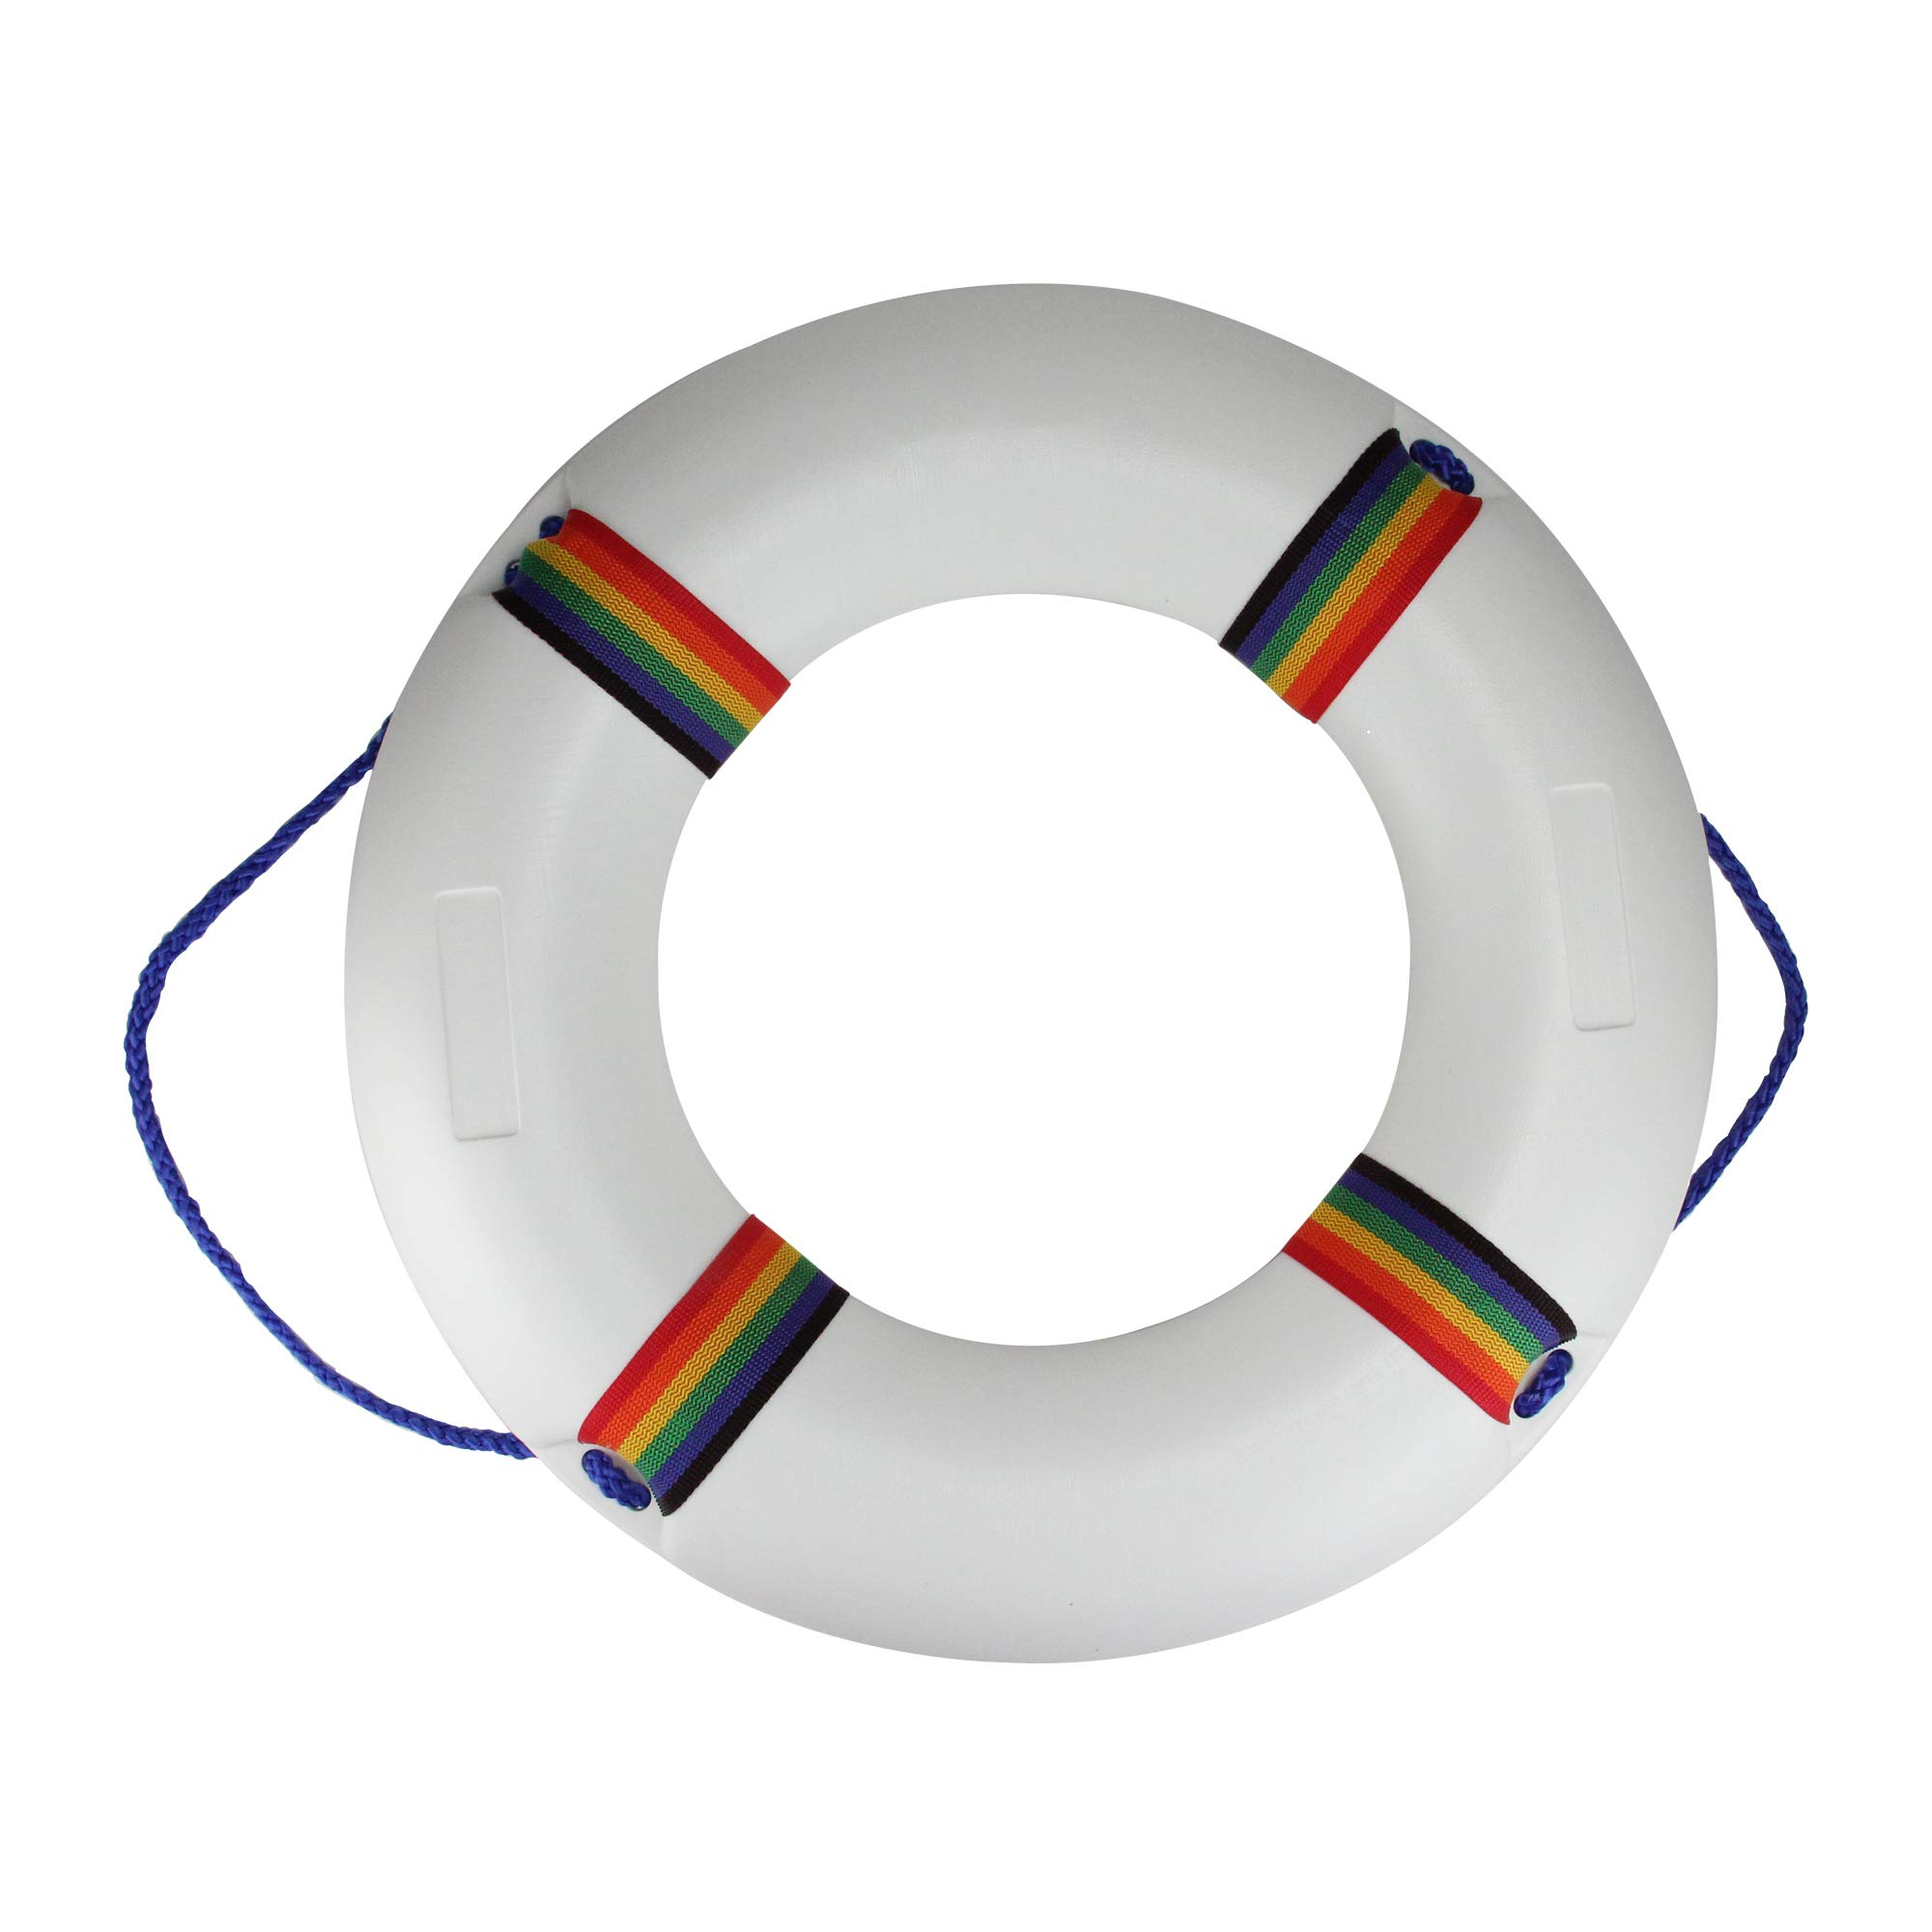 Northlight 21'' White and Multicolored Swimming Pool Summer Safety Ring Buoy by Northlight